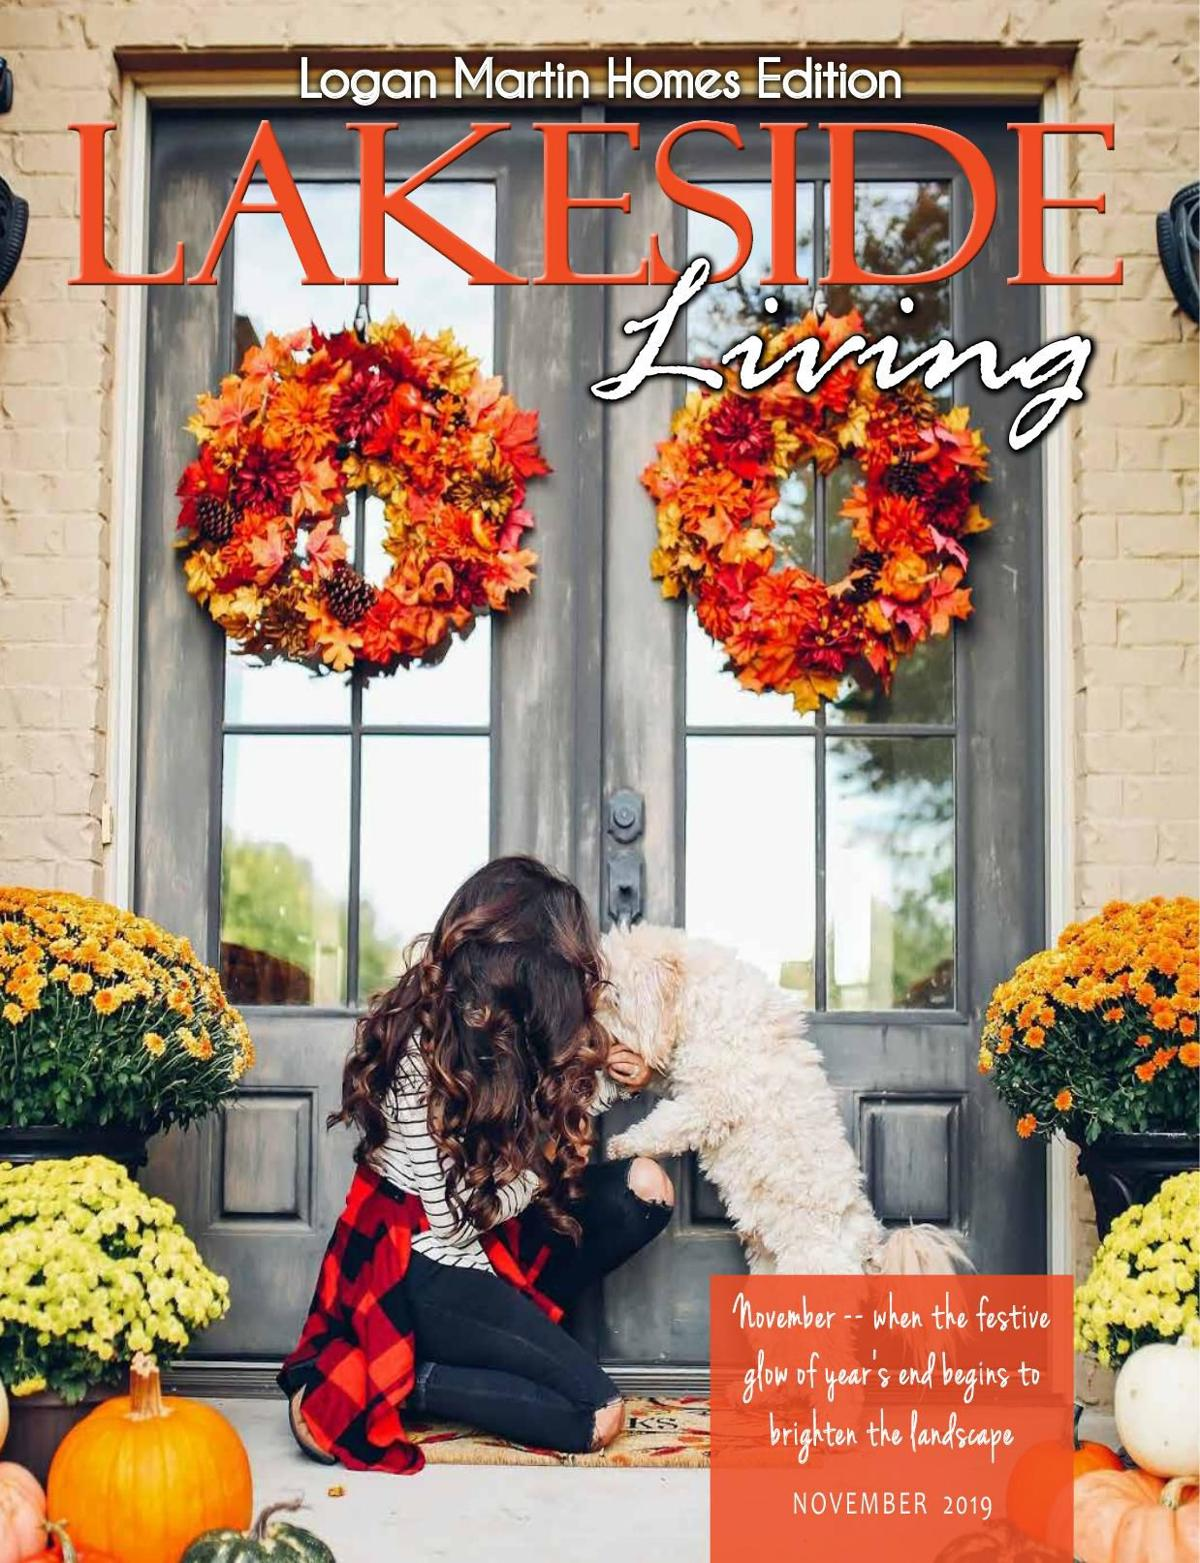 Lakeside Living November 2019